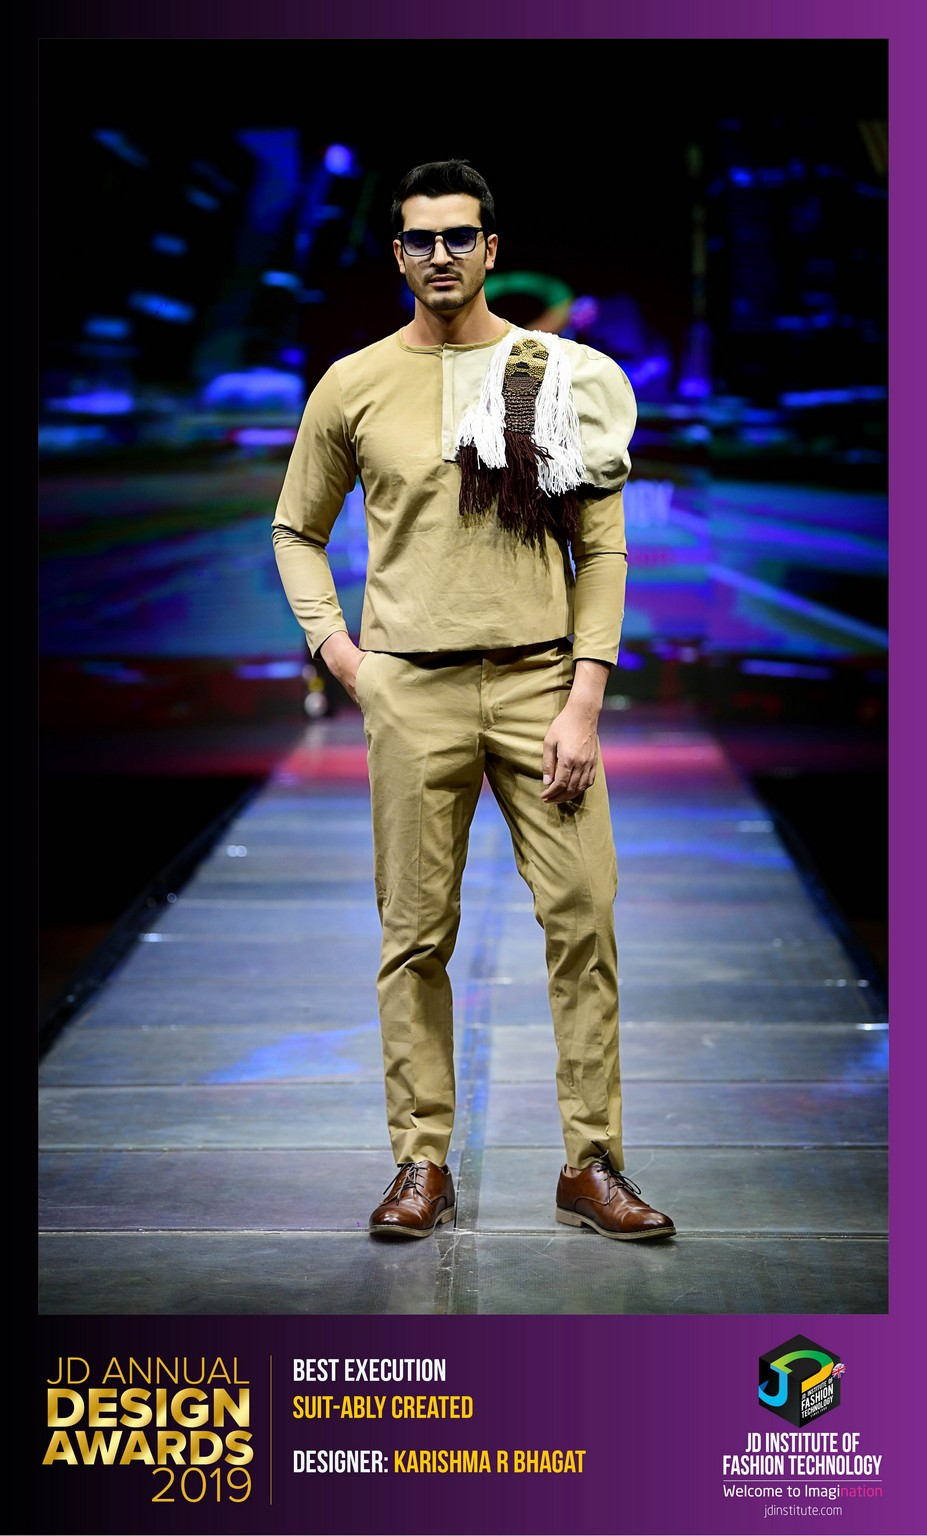 SUIT-ABLY CREATED - CURATOR - JDADA2019 suit-ably created - SUIT ABLY CREATED 9 1 - SUIT-ABLY CREATED – CURATOR – JDADA2019